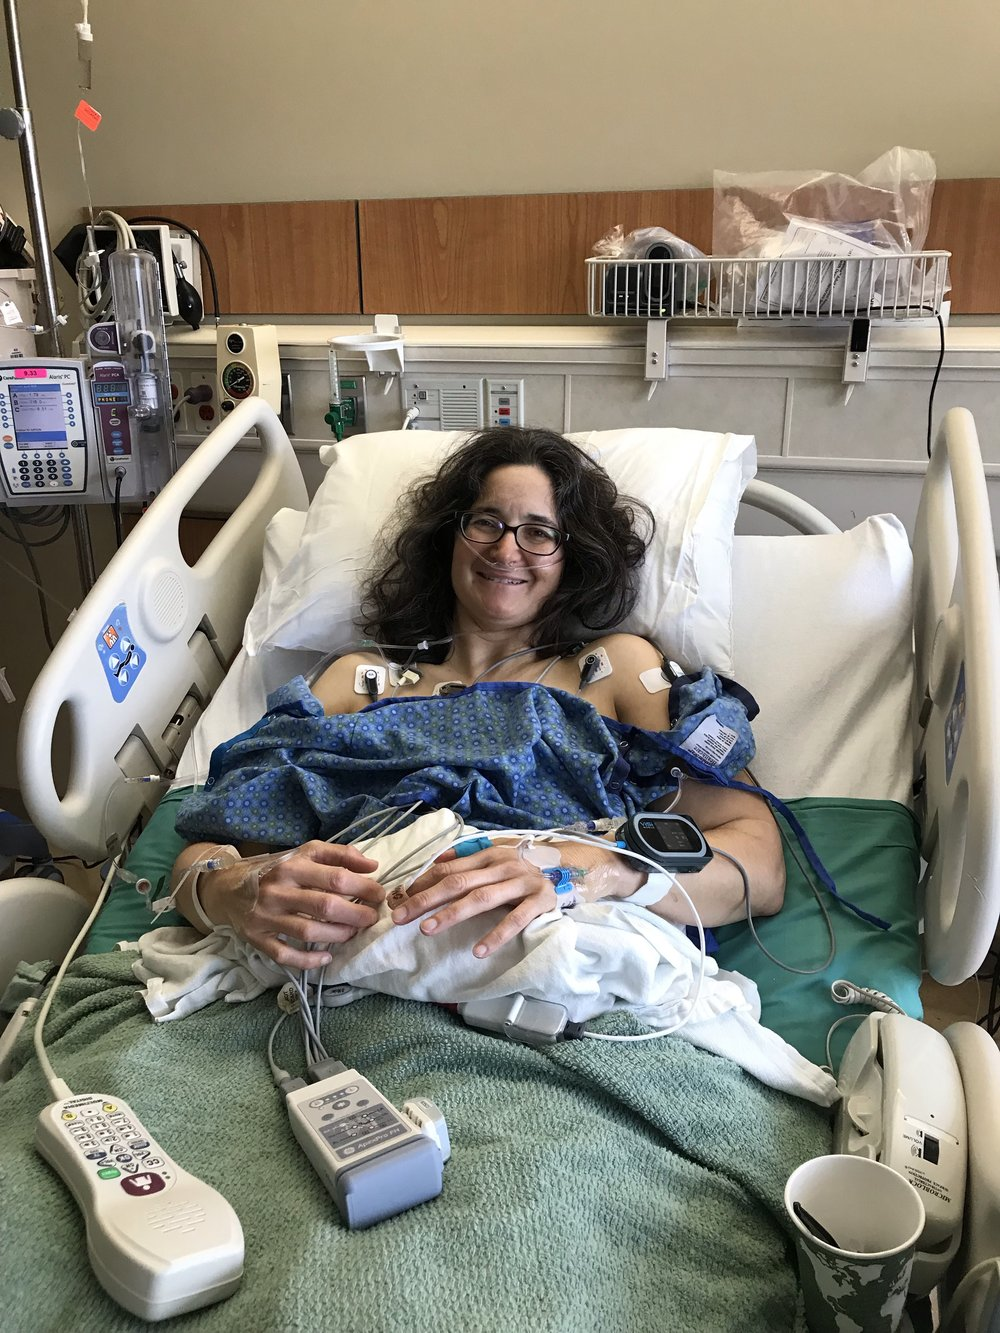 Laura pictured here after surgery.